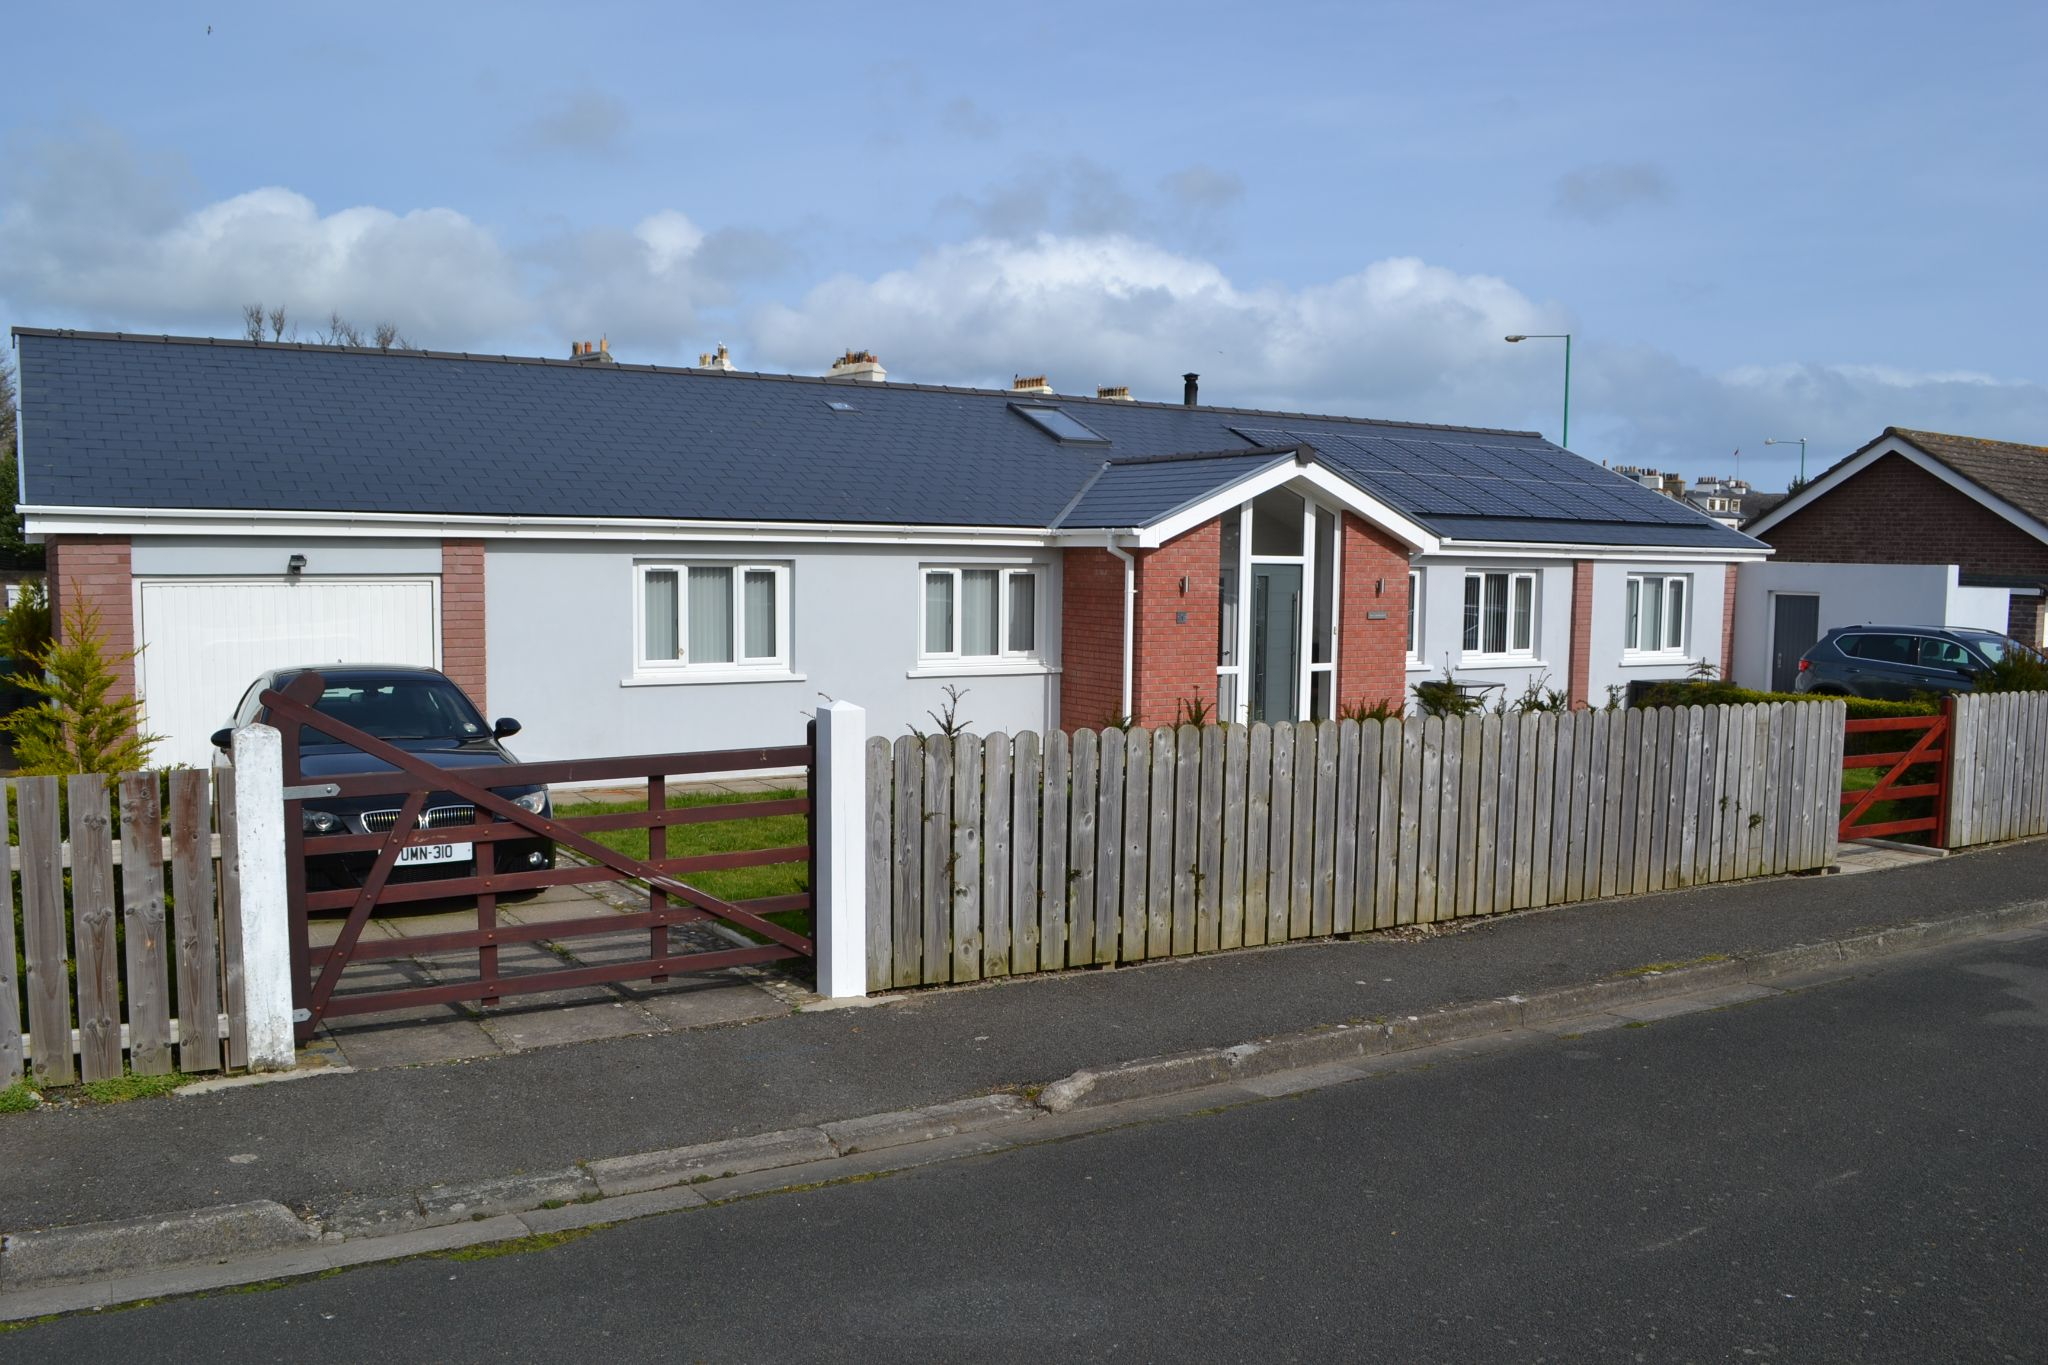 4 bedroom detached bungalow Sold in Castletown - Photograph 1